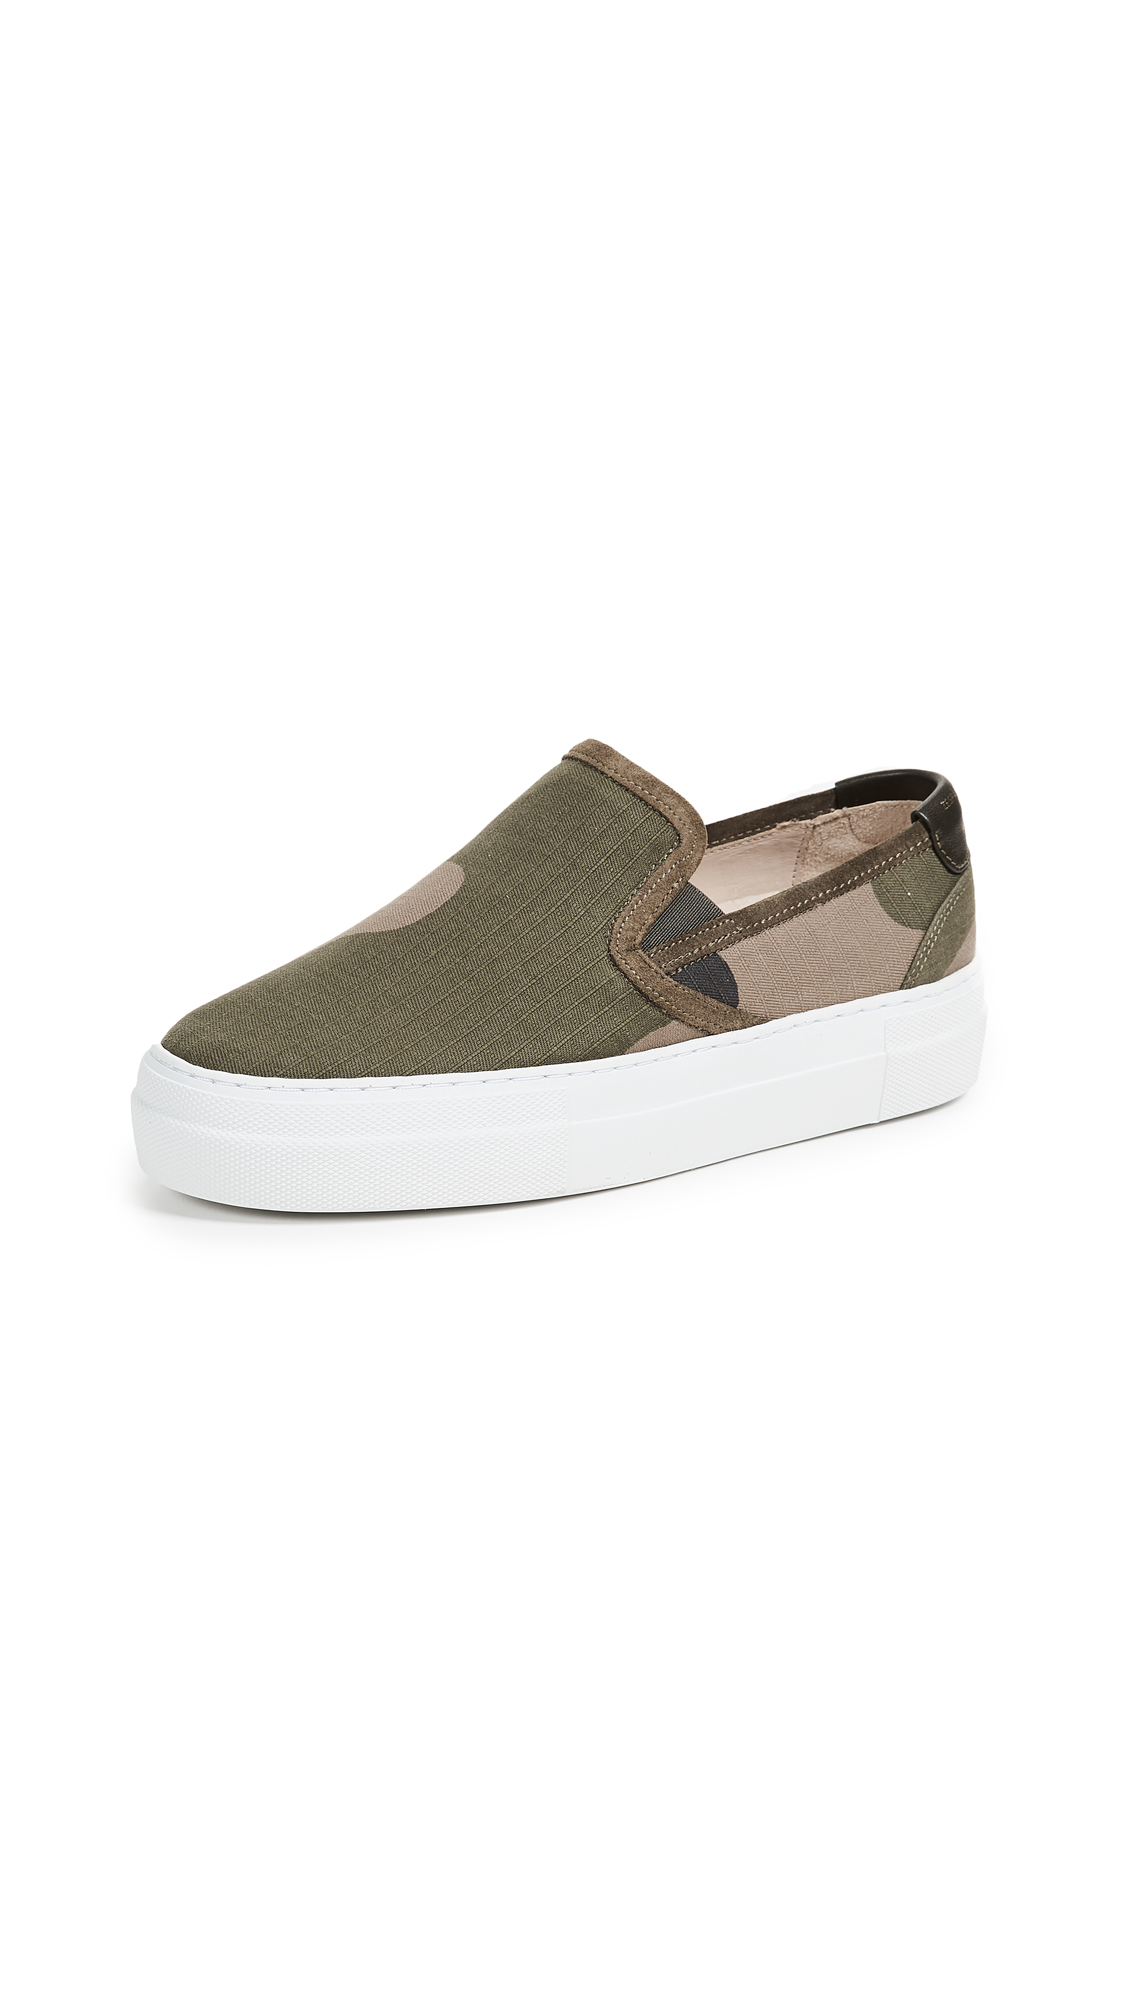 Zespa Slipon Camo Sneakers - Camo/White